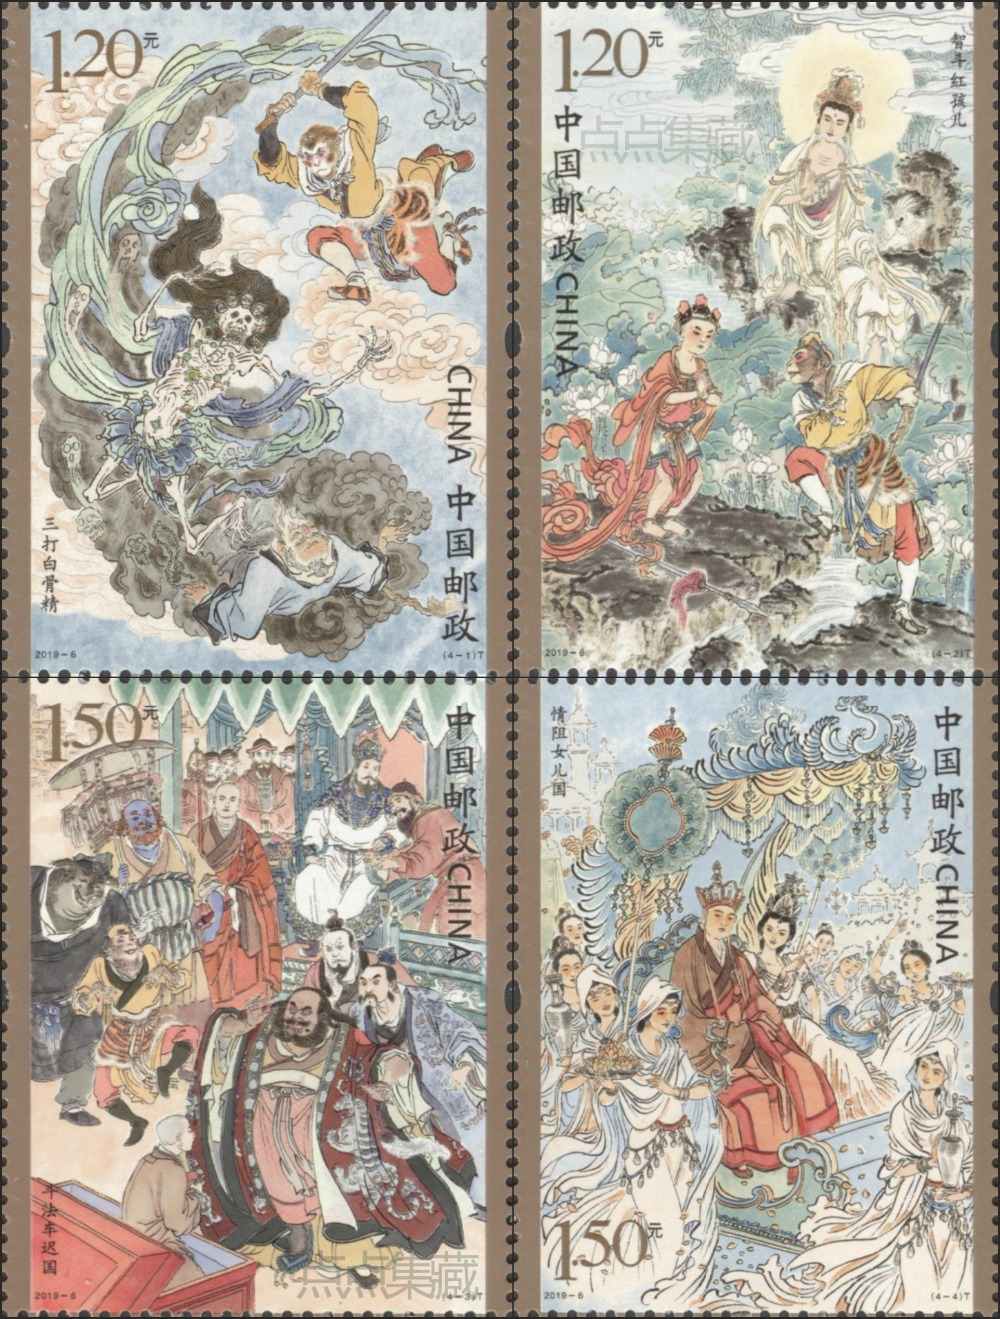 4 PCS SET Journey to the West 2019-6 China Post Stamps Postage Collection